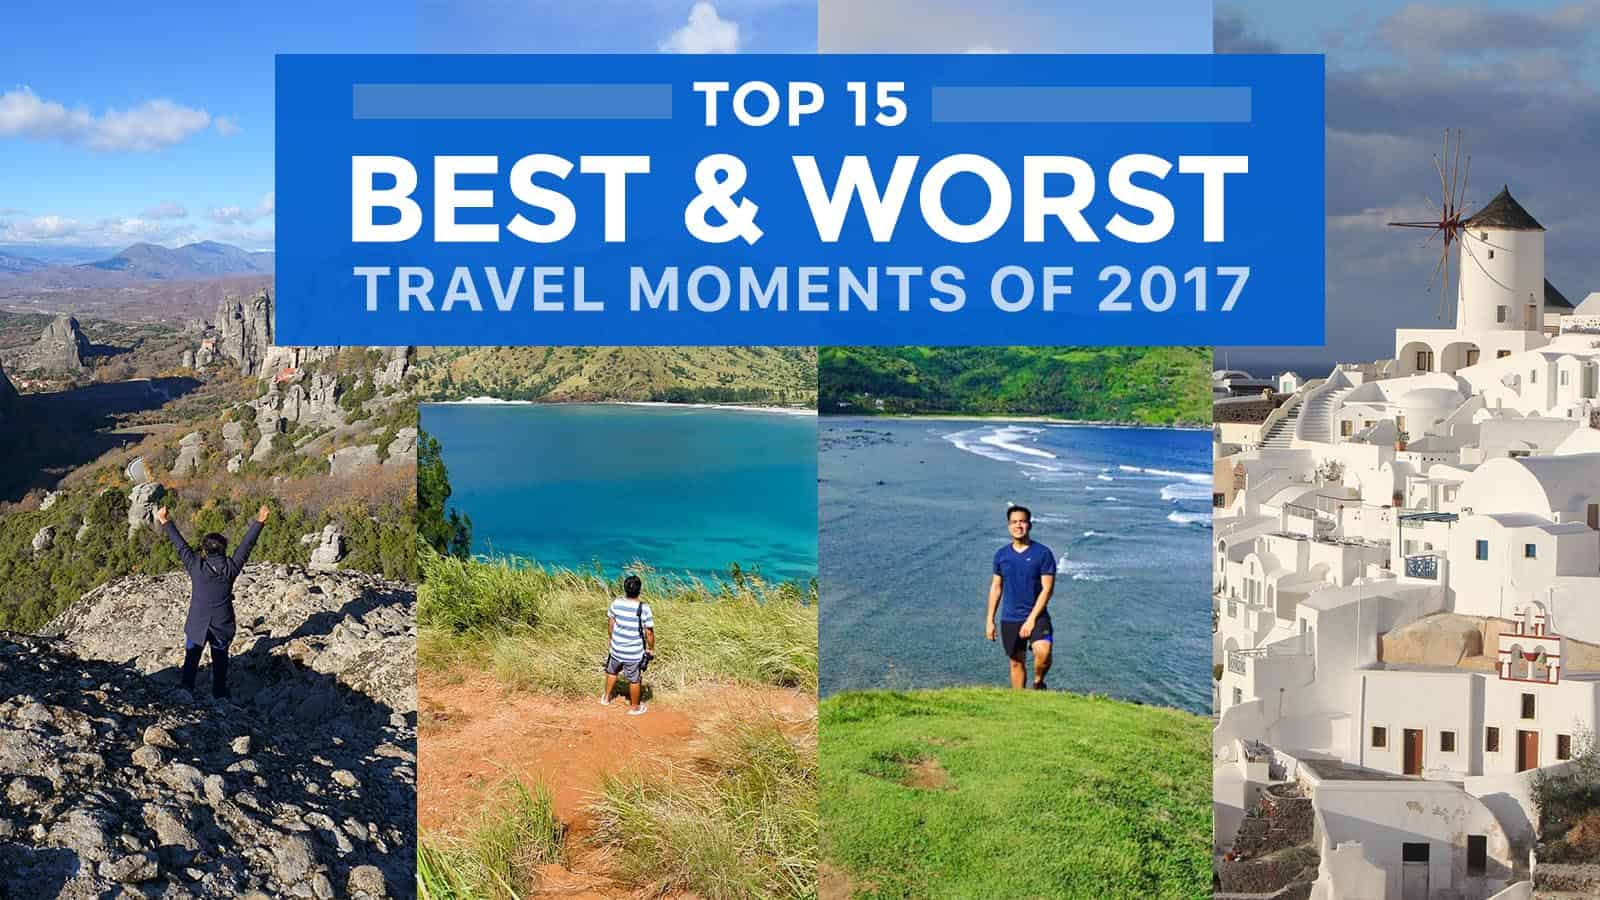 Top 15 Best & Worst Travel Moments of 2017